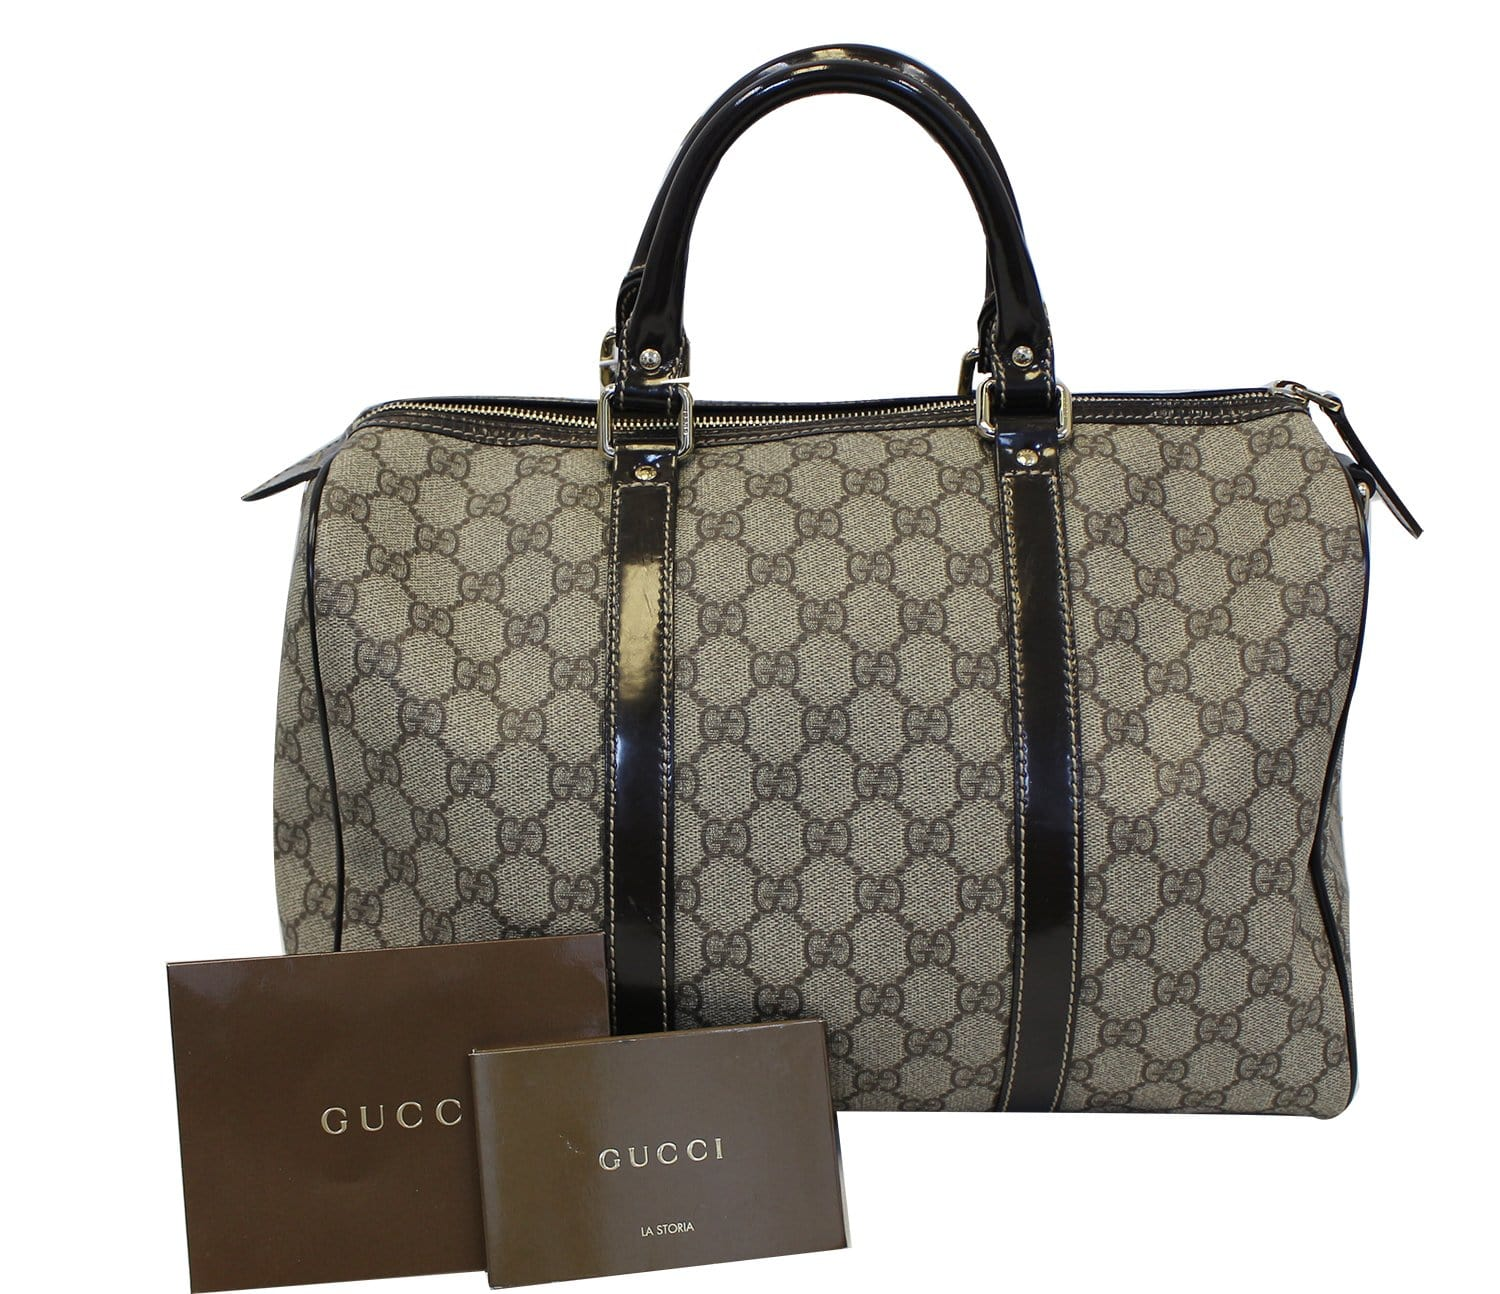 d08bdbf2b0a GUCCI Joy Medium Monogram Boston Satchel Bag 193603